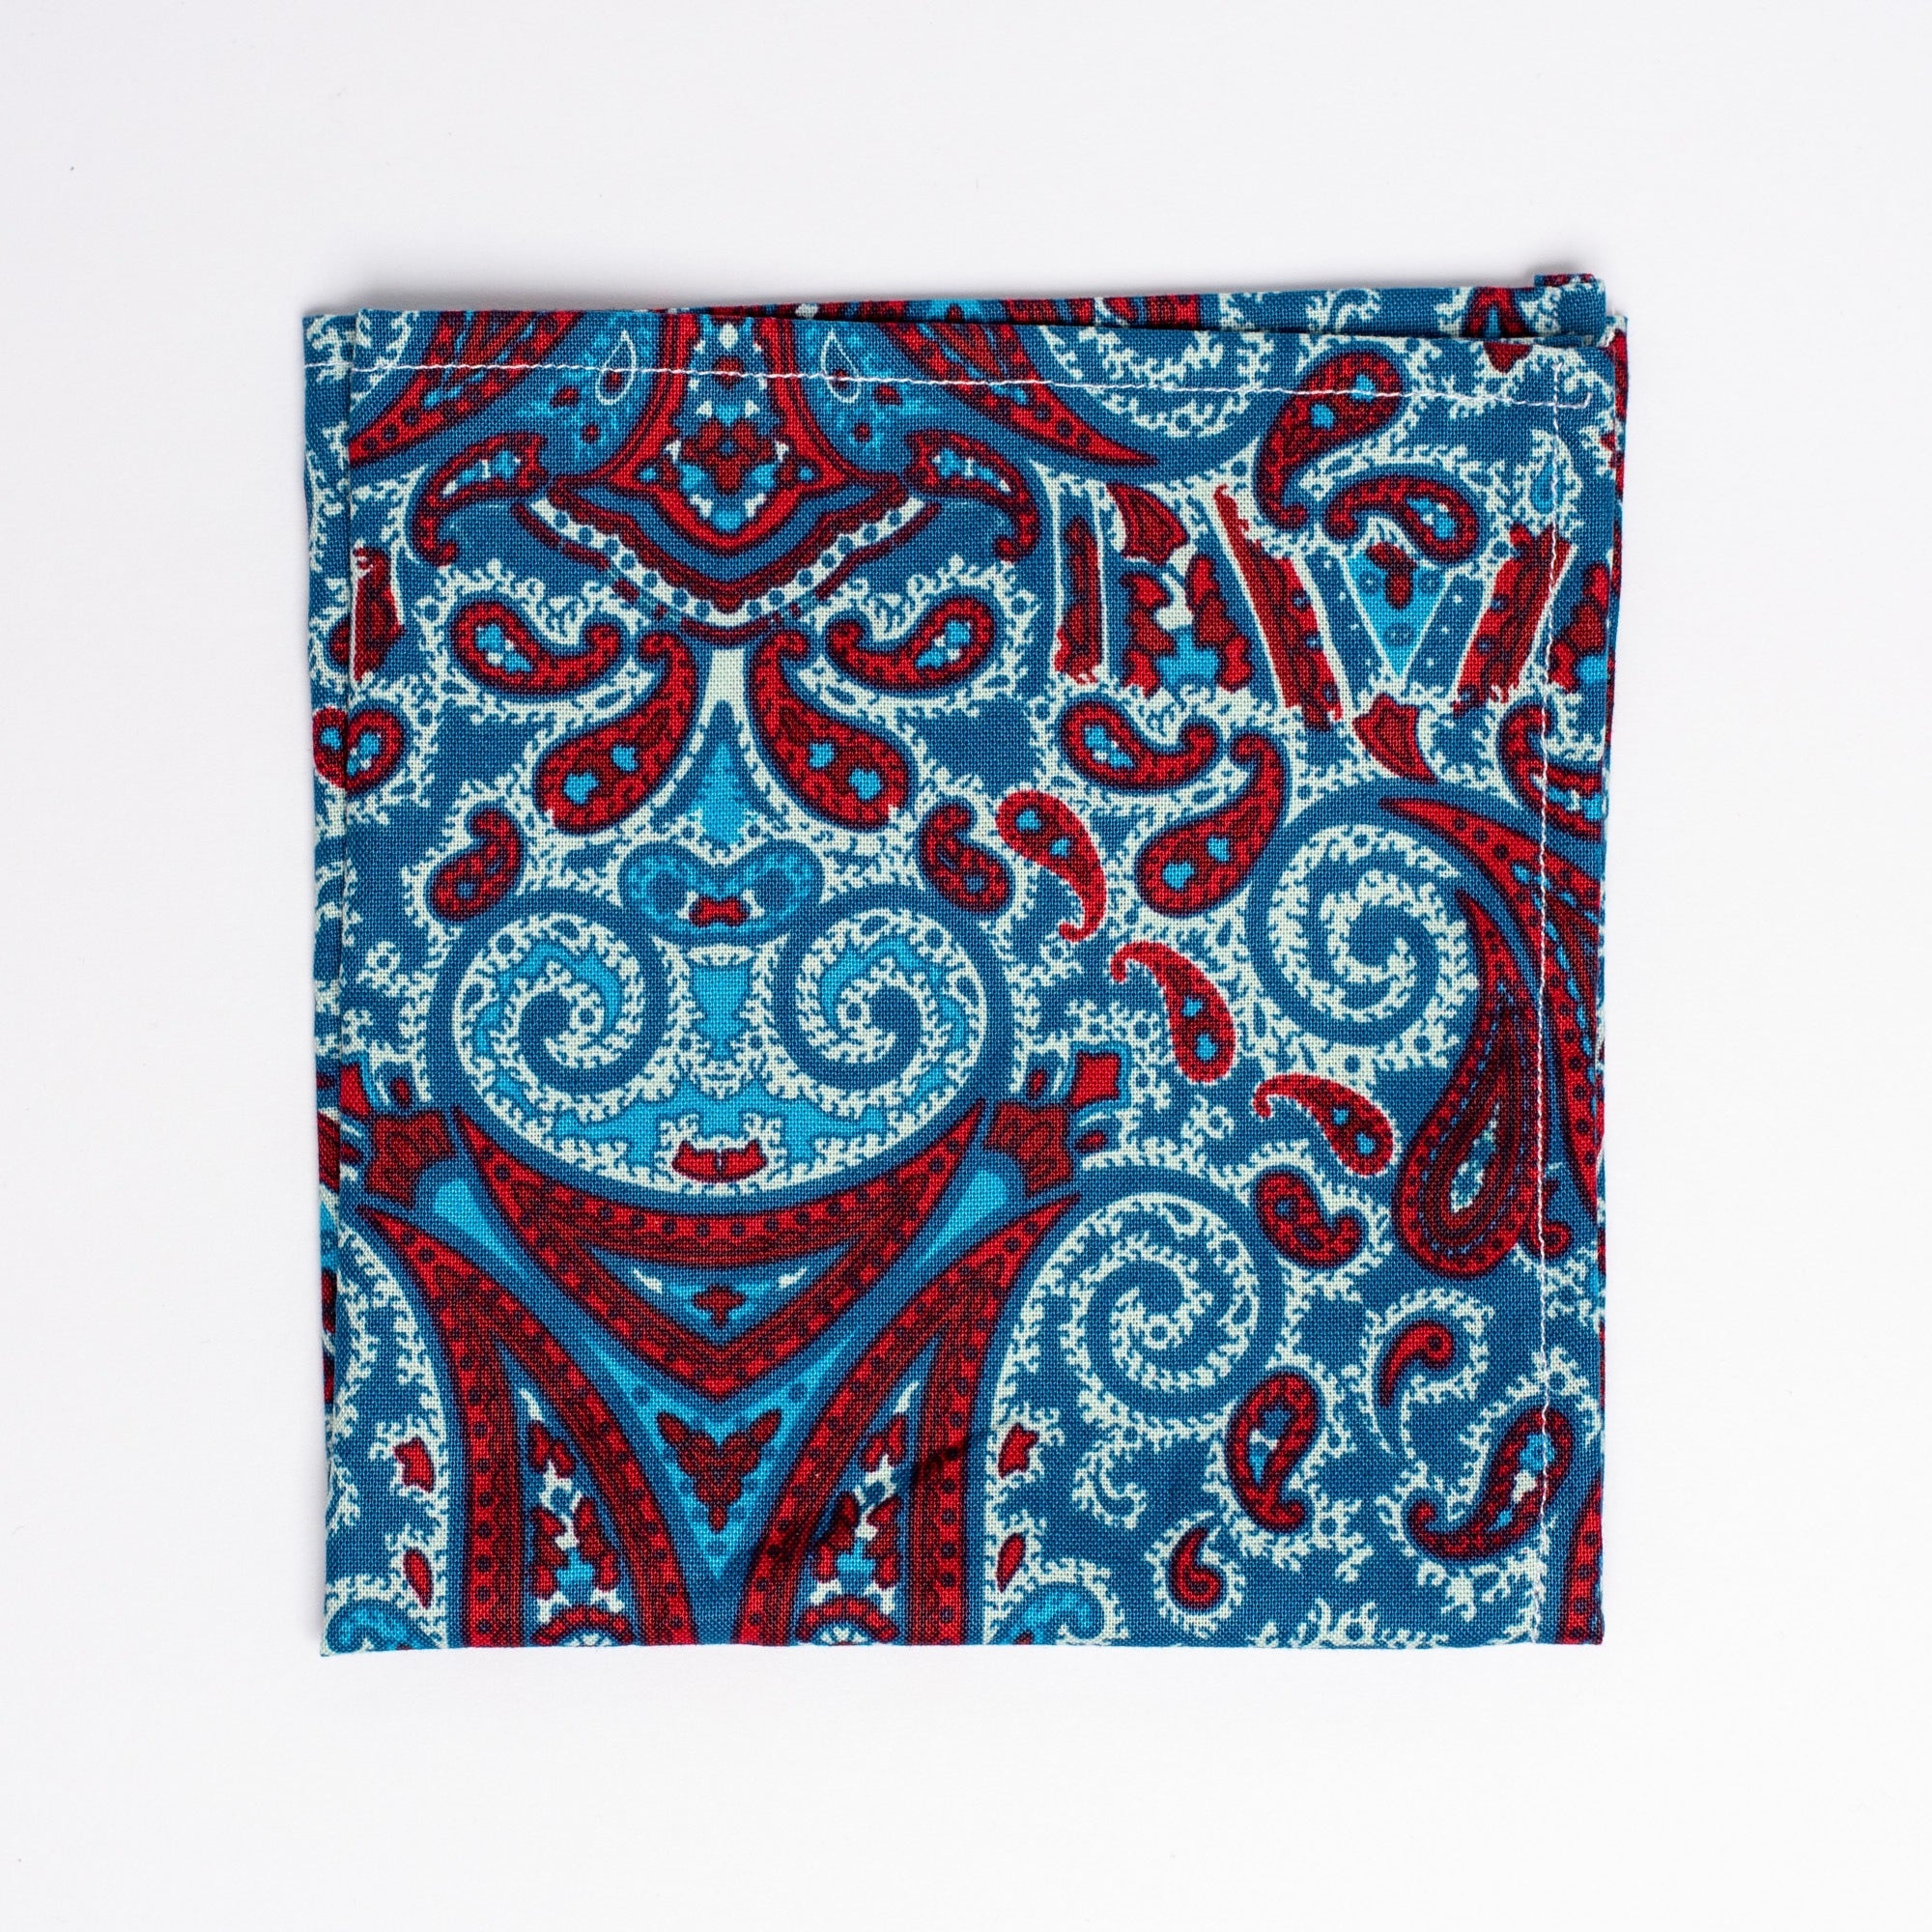 red and blue paisley pattern pocket square - Oxford Square